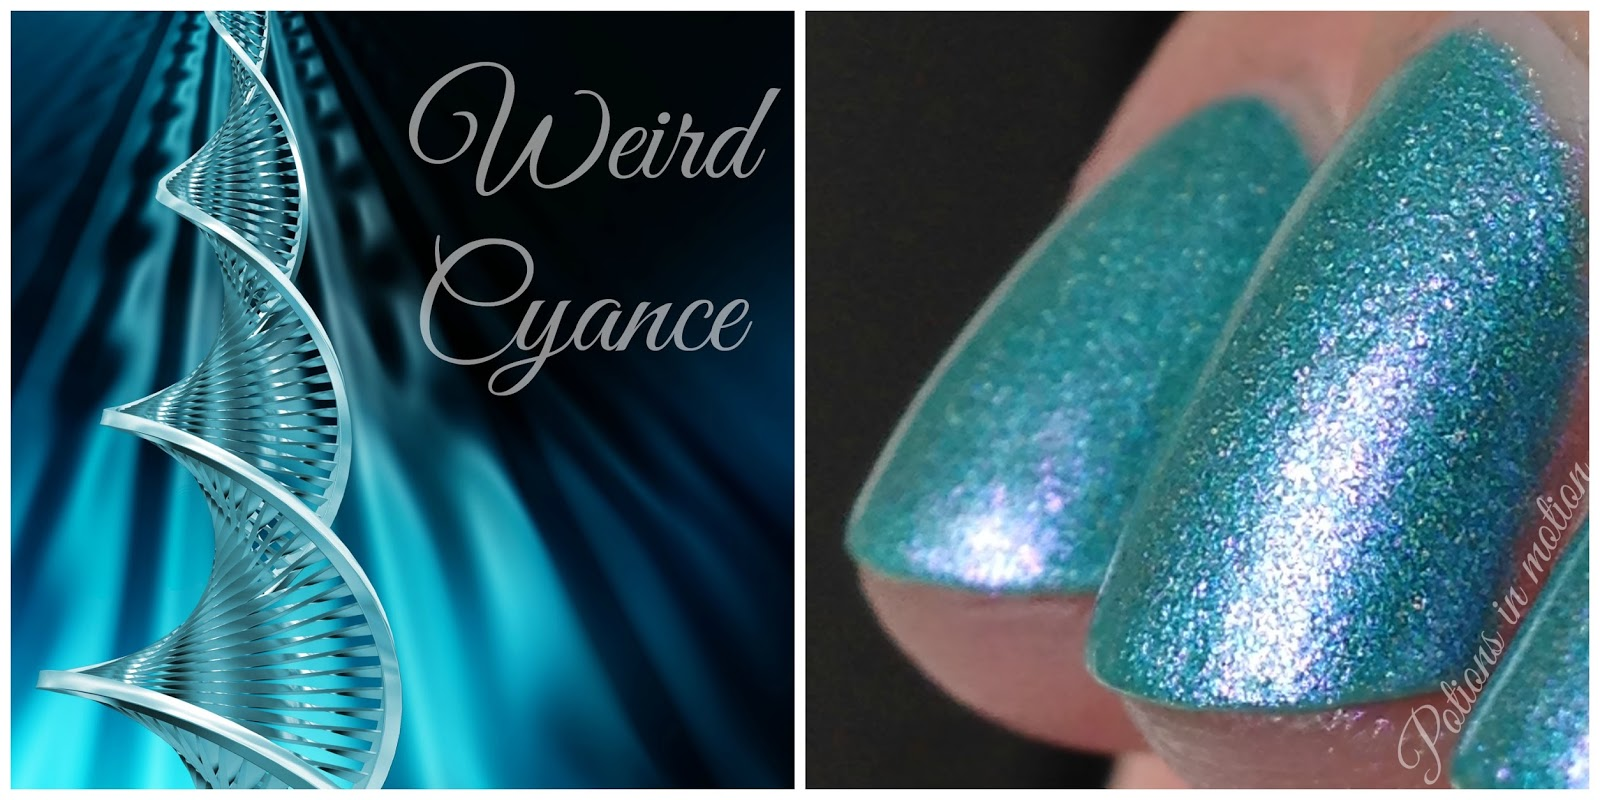 Potions in motion nail blog: Lilypad Lacquer Custom - Weird Cyance!